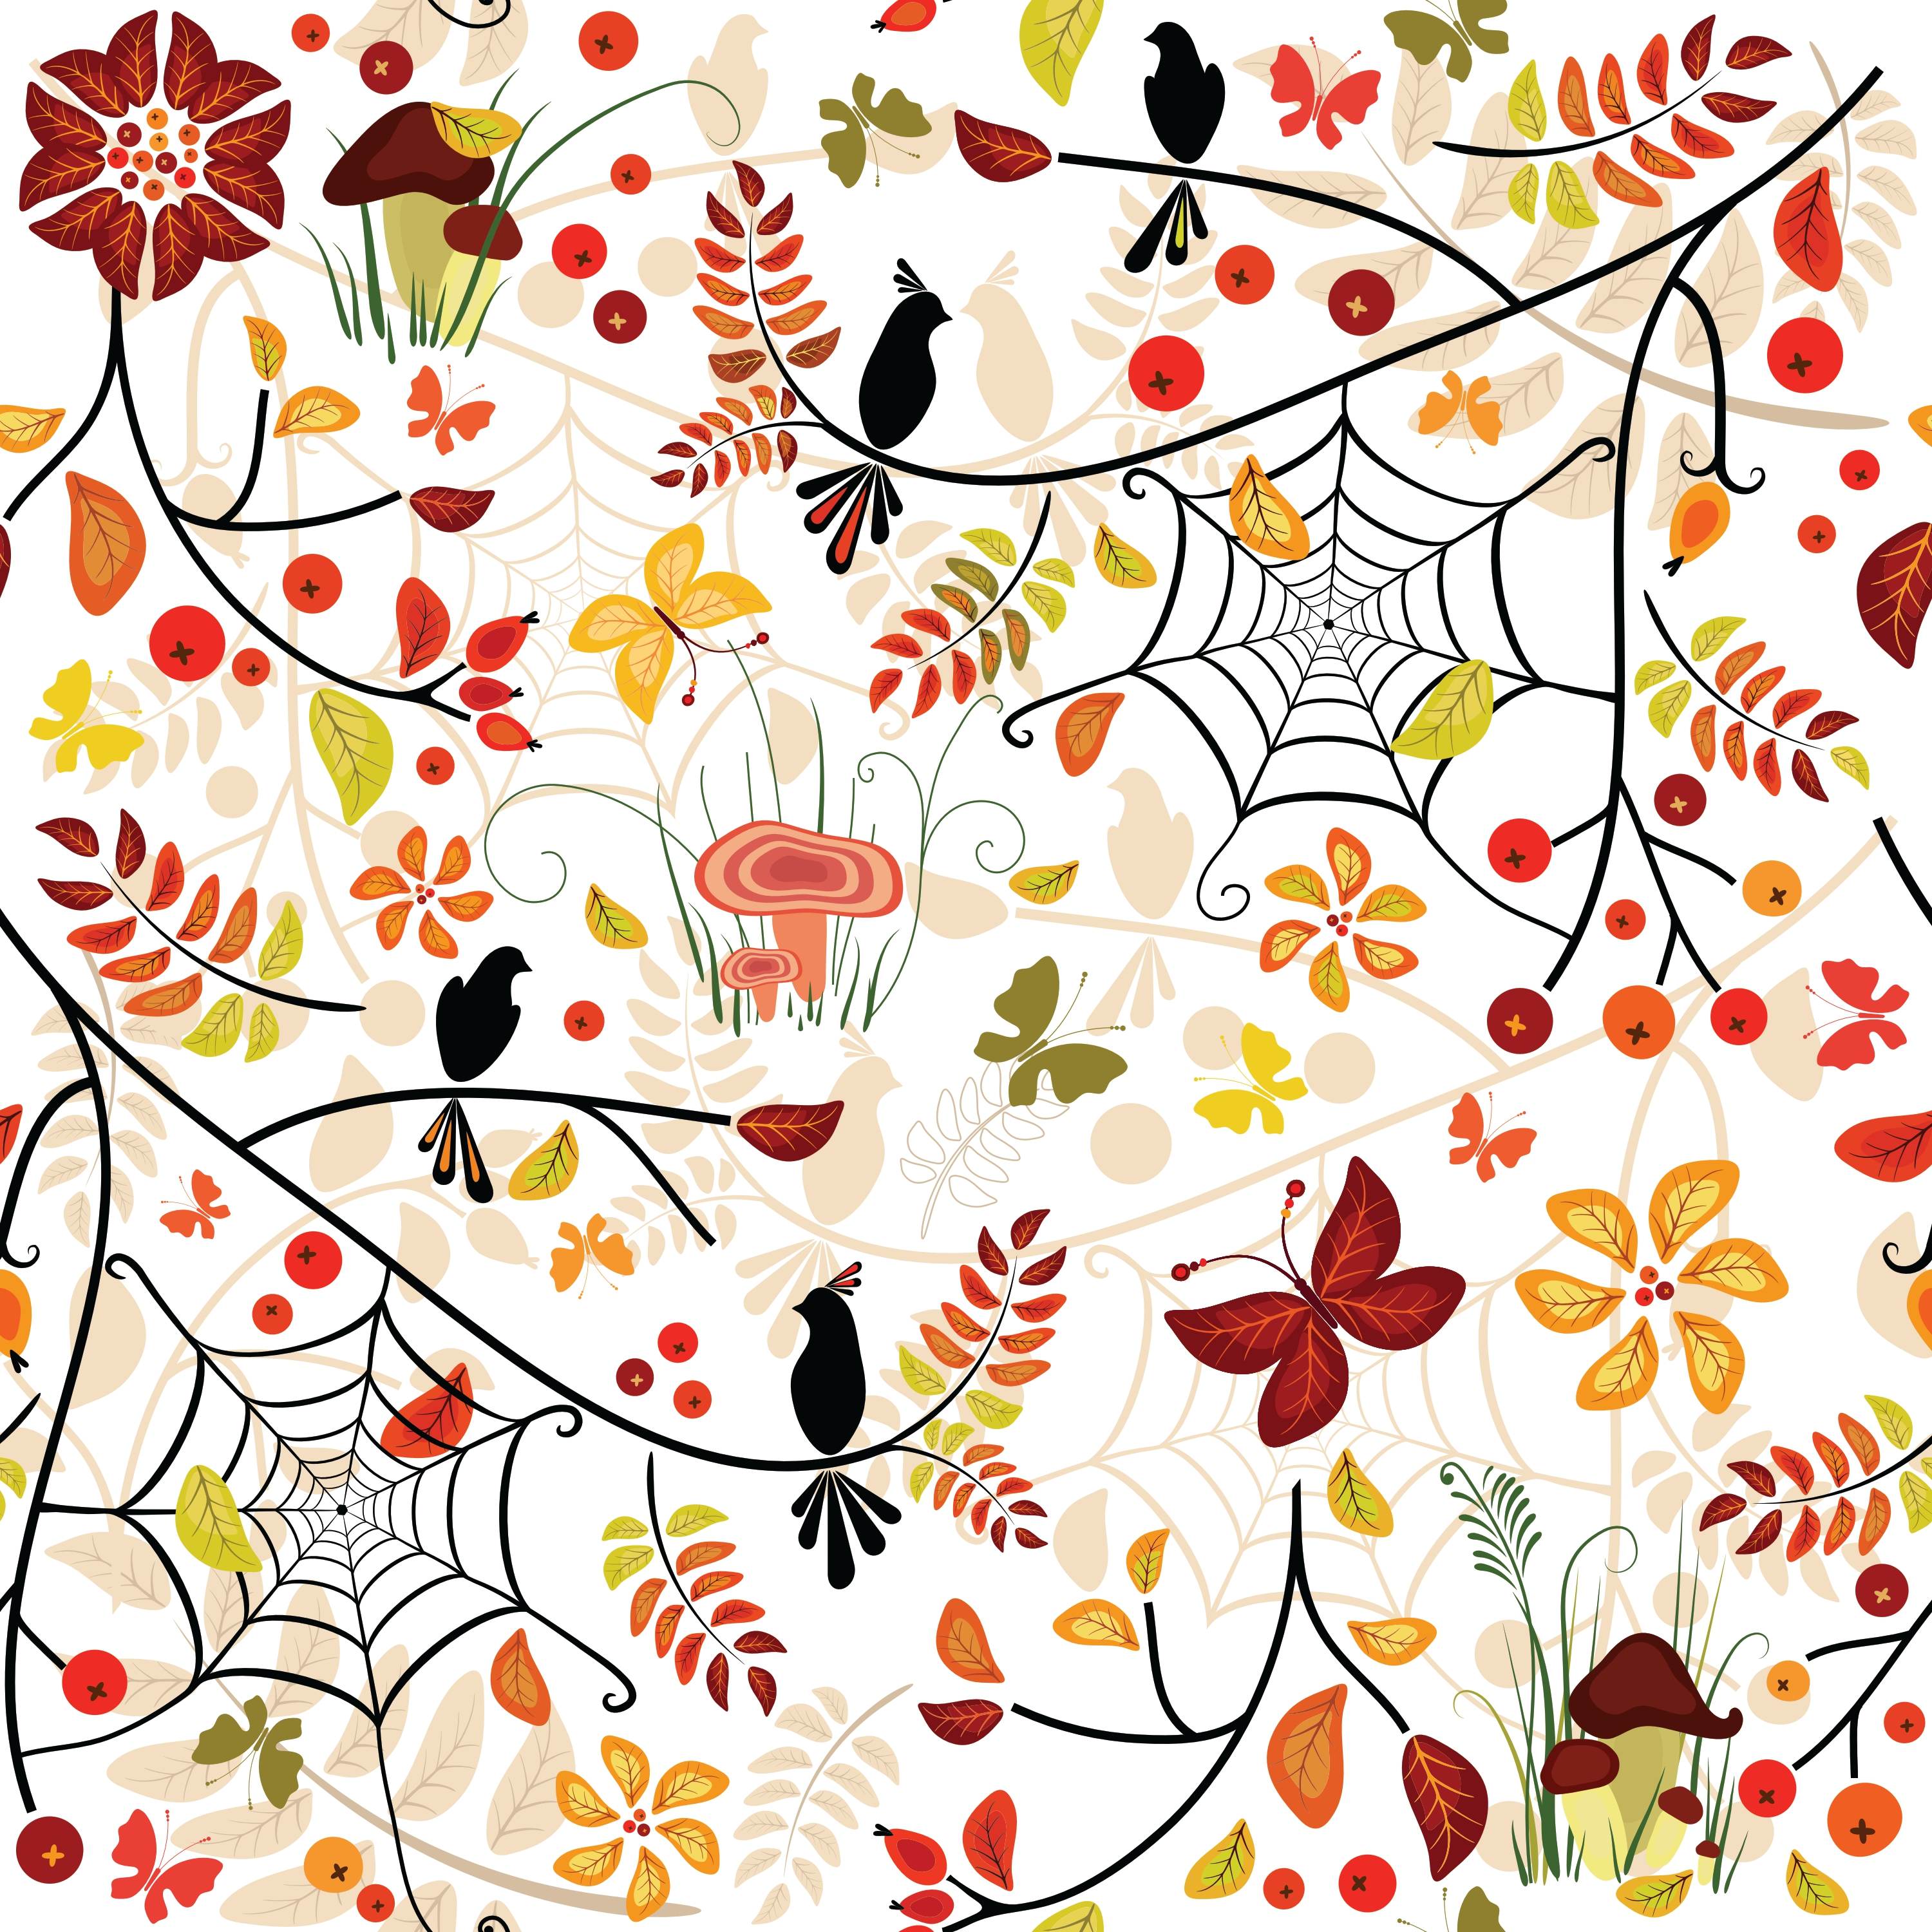 2228-autumn-floral-pattern-seamless-background